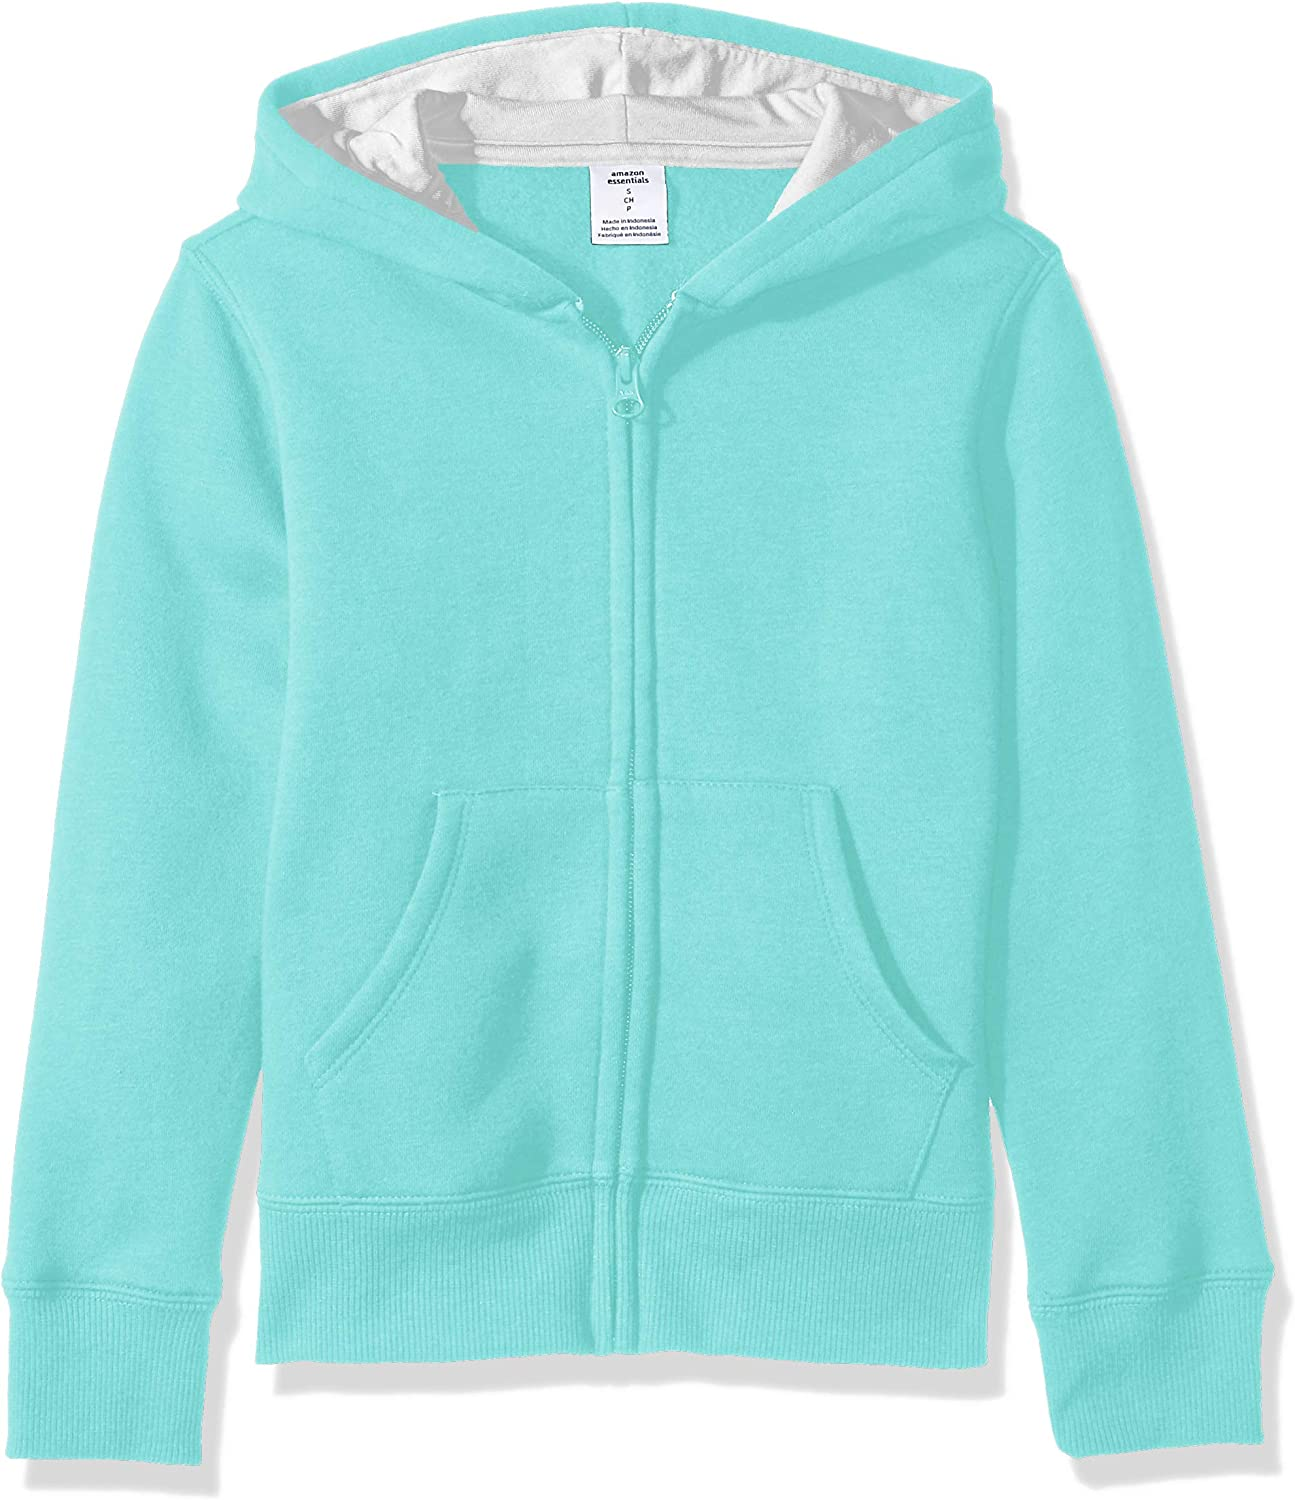 Girls Zip-Up Light Pink Hoodie Fashion Apparel for Young Women